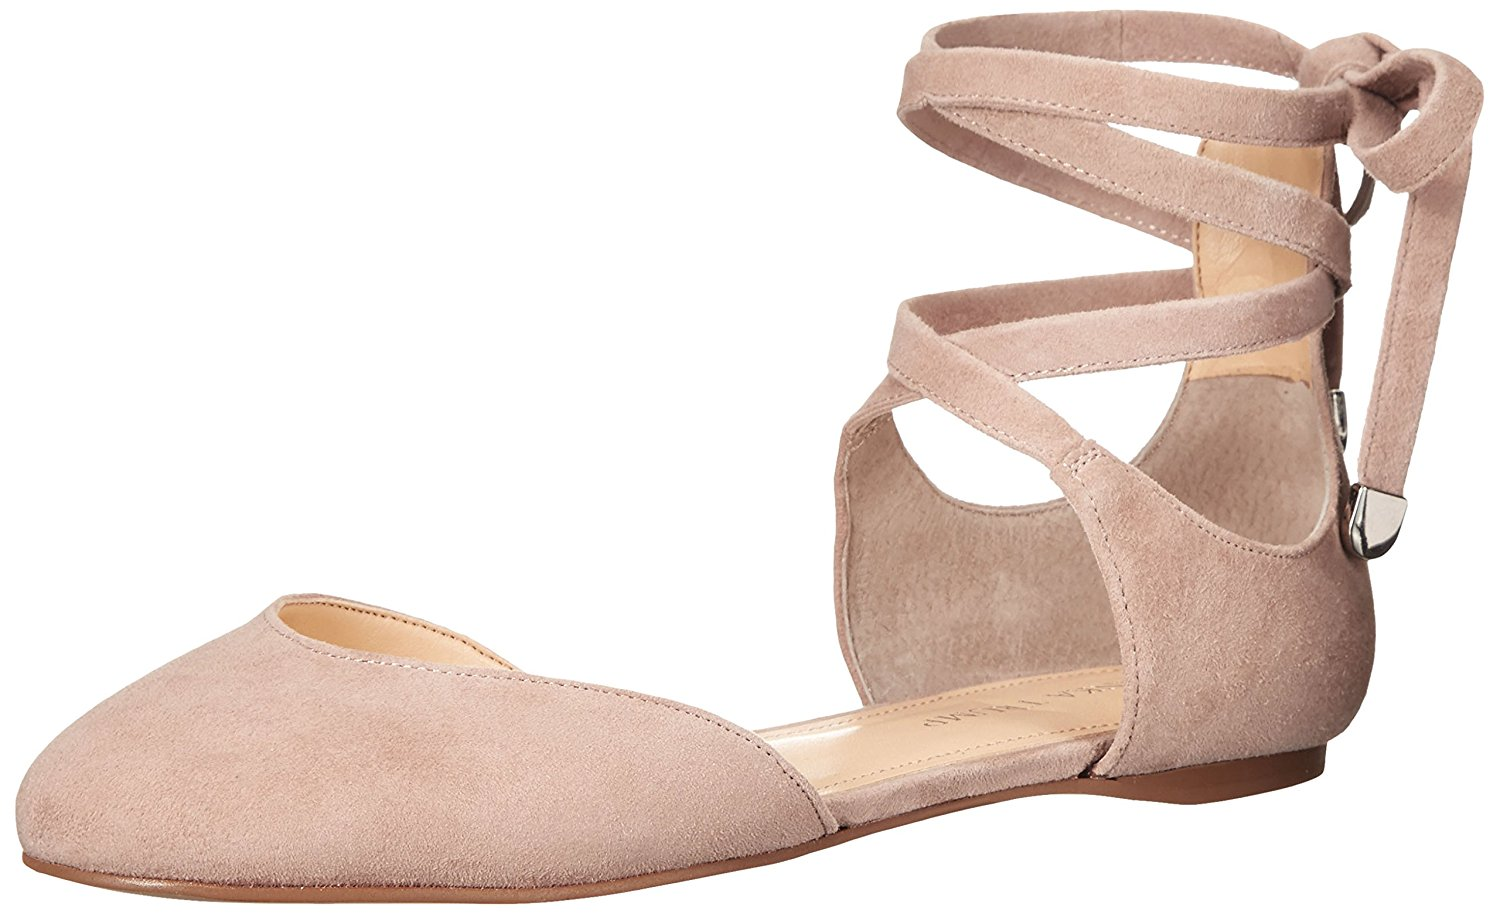 Ivanka Trump Womens Elise Leather Closed Toe Ankle Wrap Light Natural Size 6.5